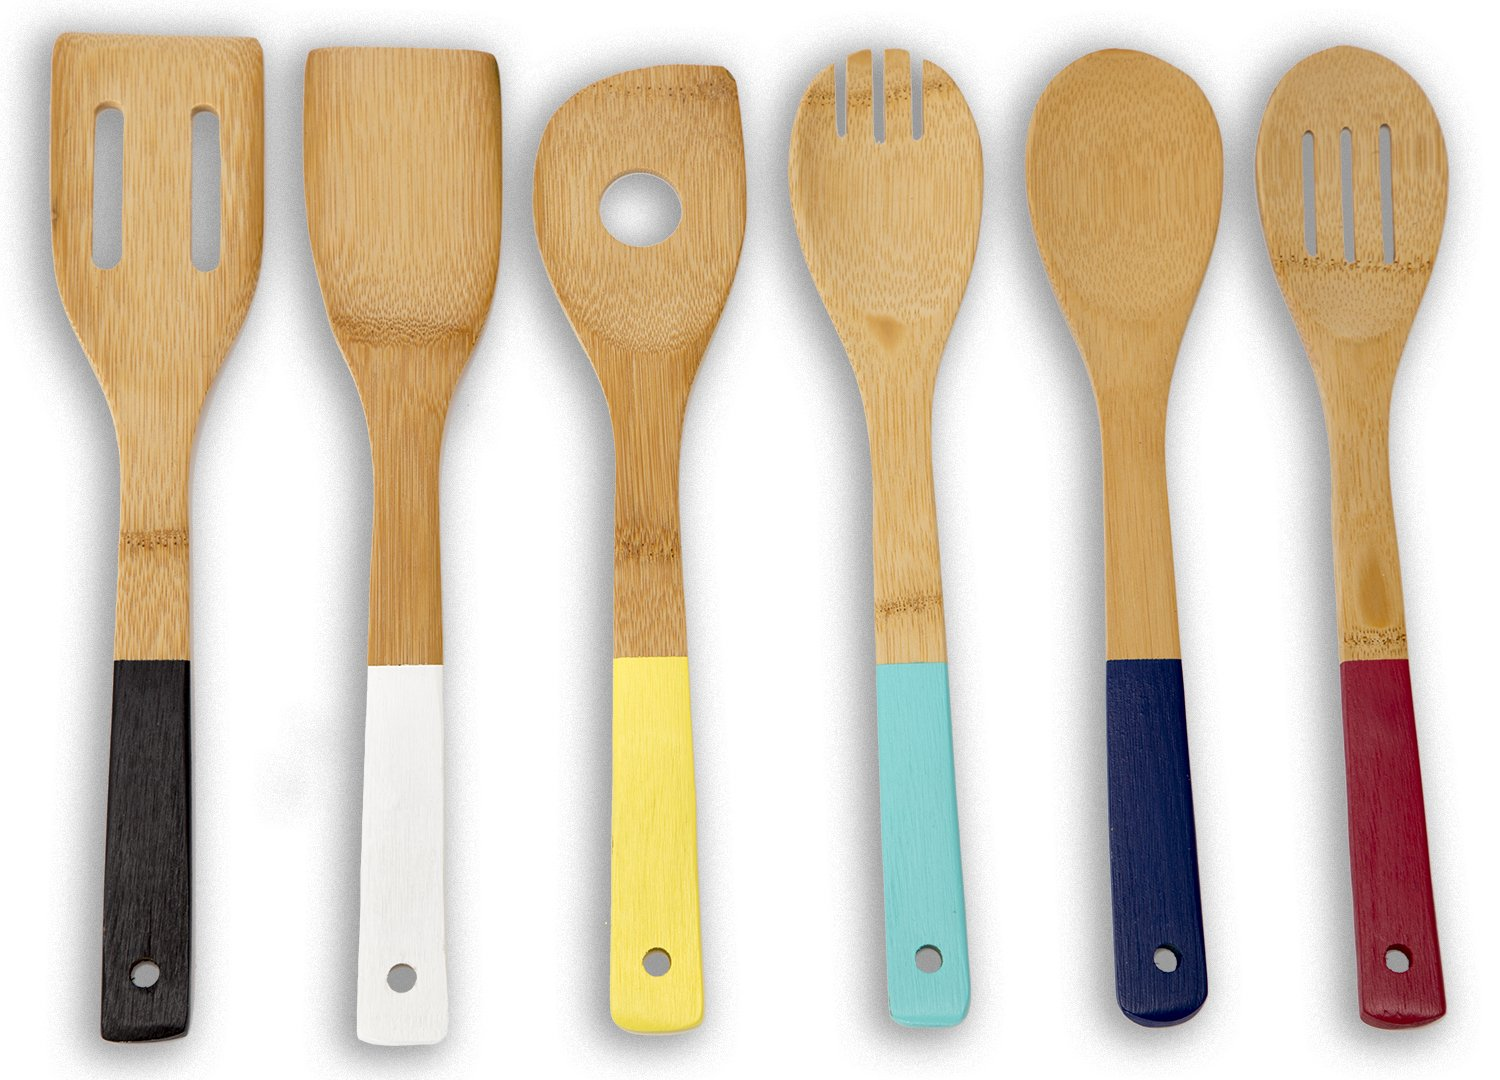 colorful kitchen utensils. Amazon.com: Home Basics Bamboo Cooking Utensils Set With Color Handles, 6-Piece: Kitchen \u0026 Dining Colorful